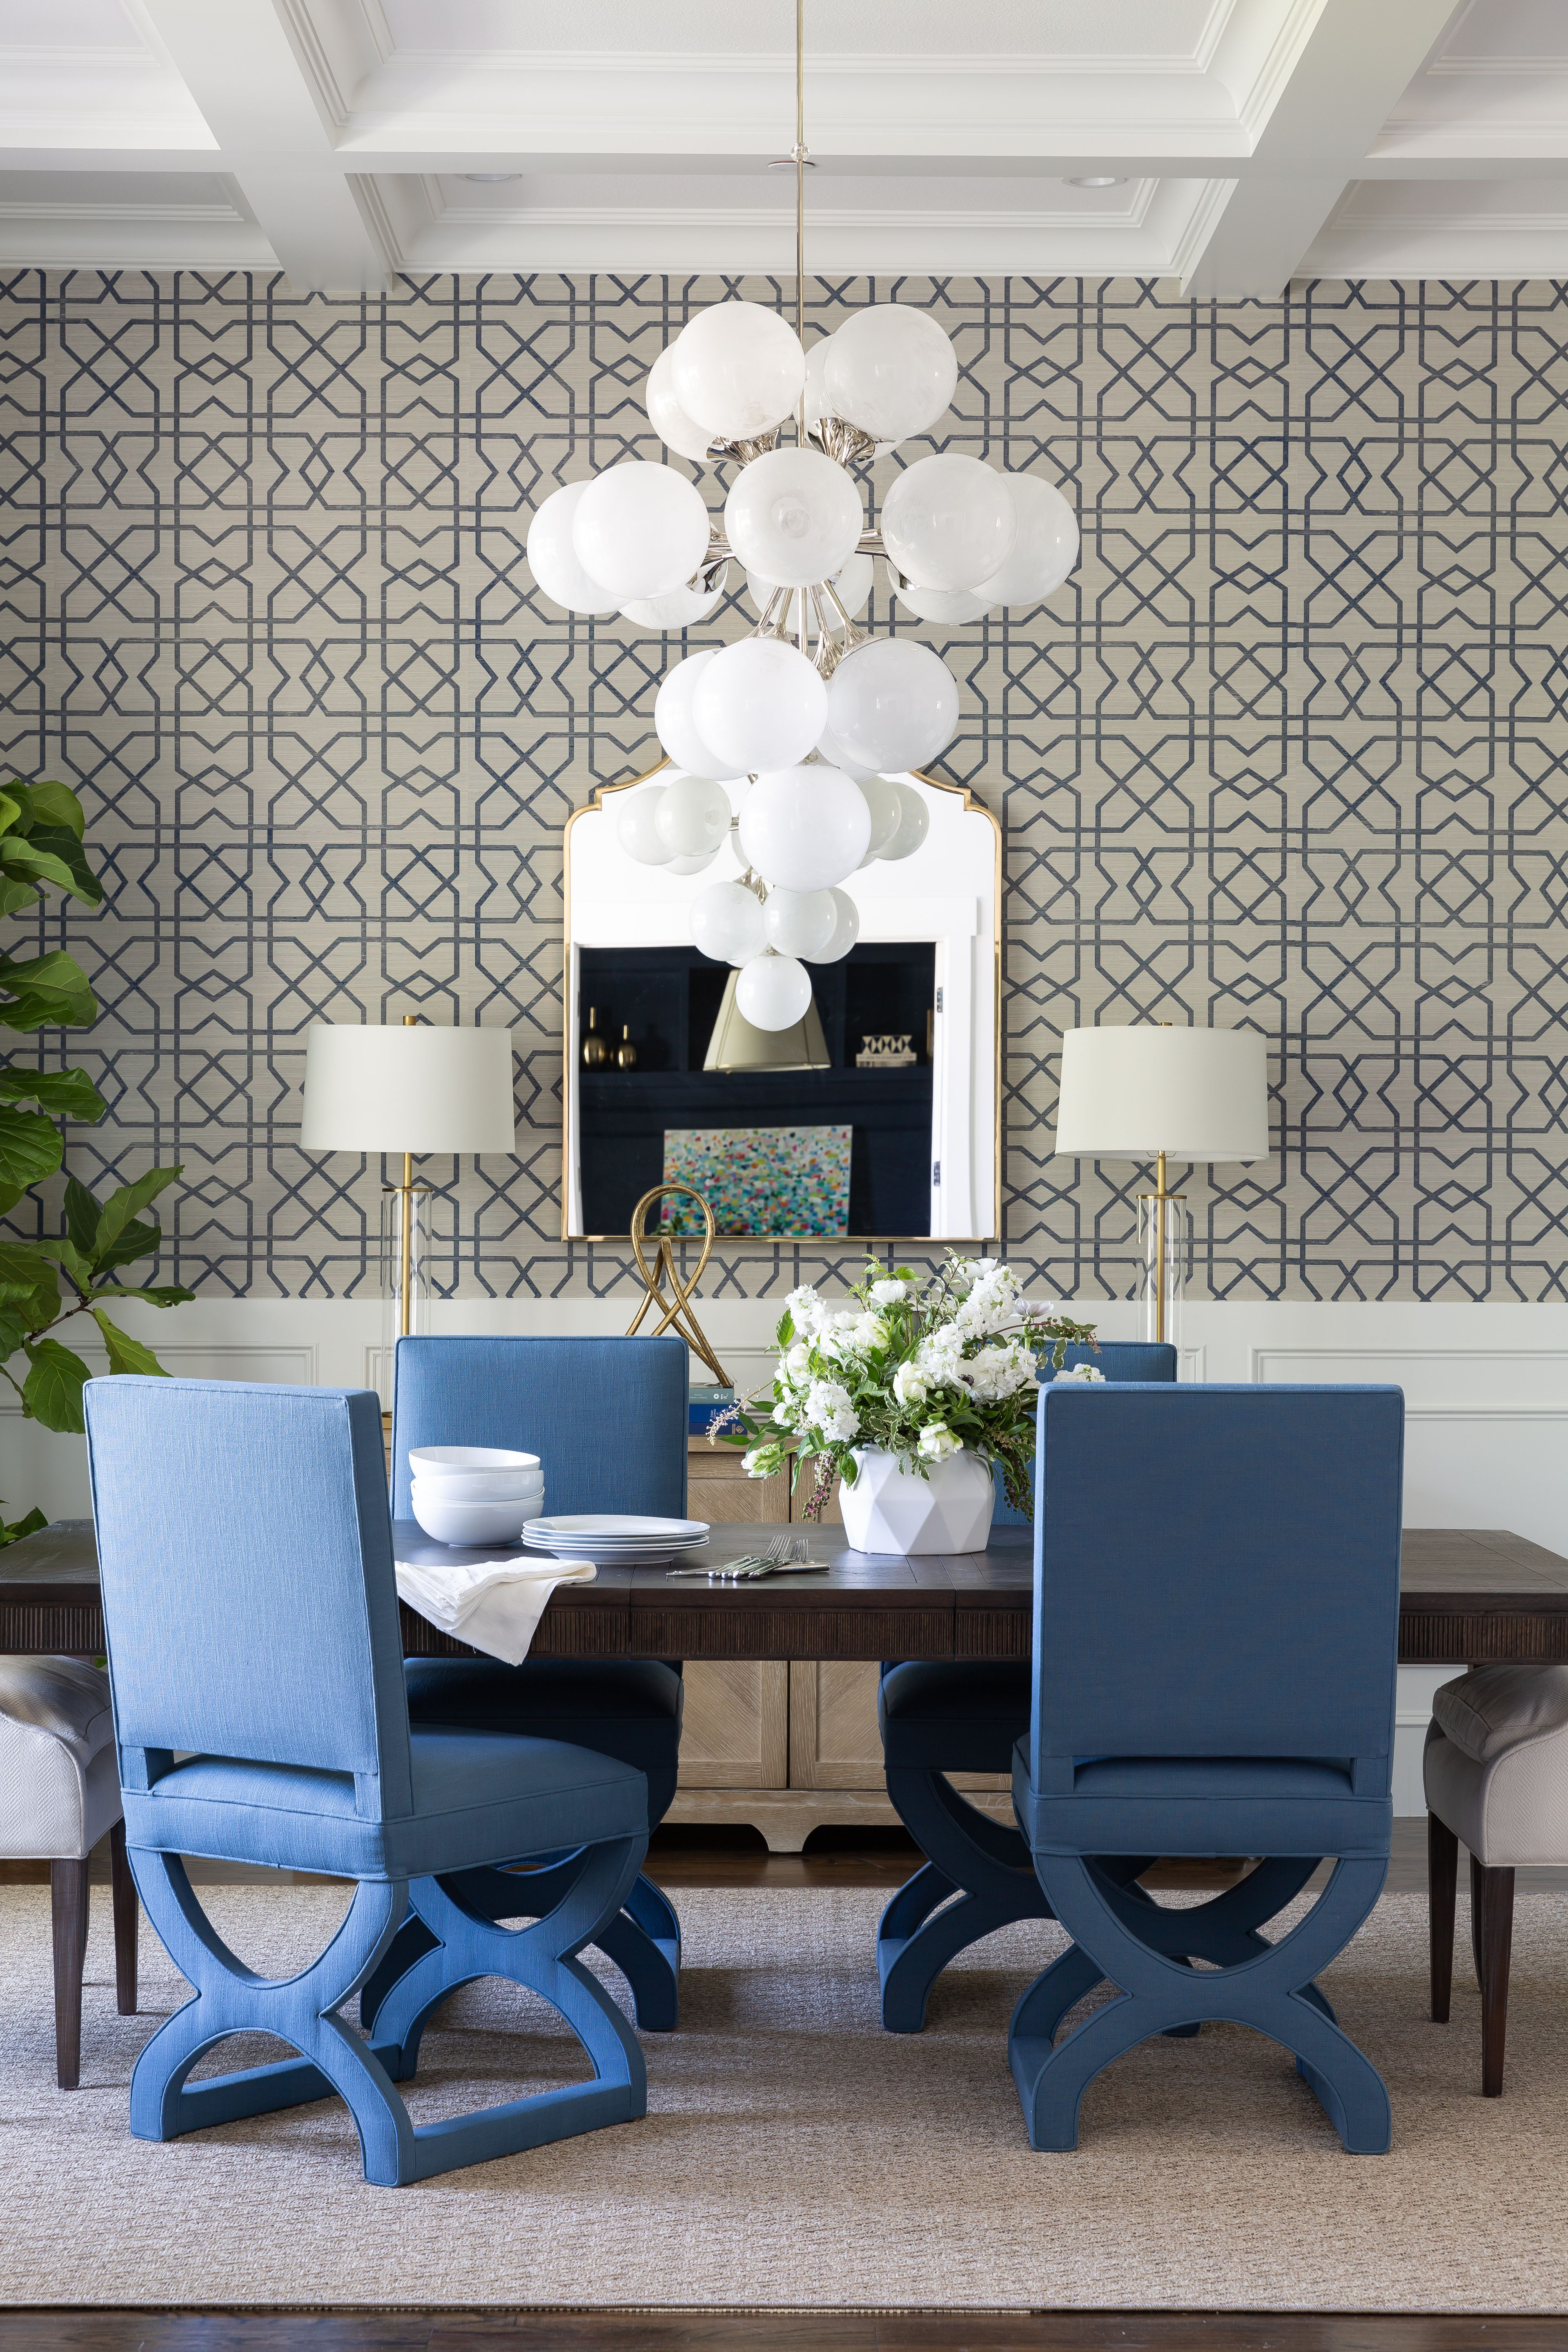 Dallas Dining Room With Patterned Grasscloth Wallpaper Dining Room Wall Color Trendy Dining Room Dining Room Chairs Upholstered